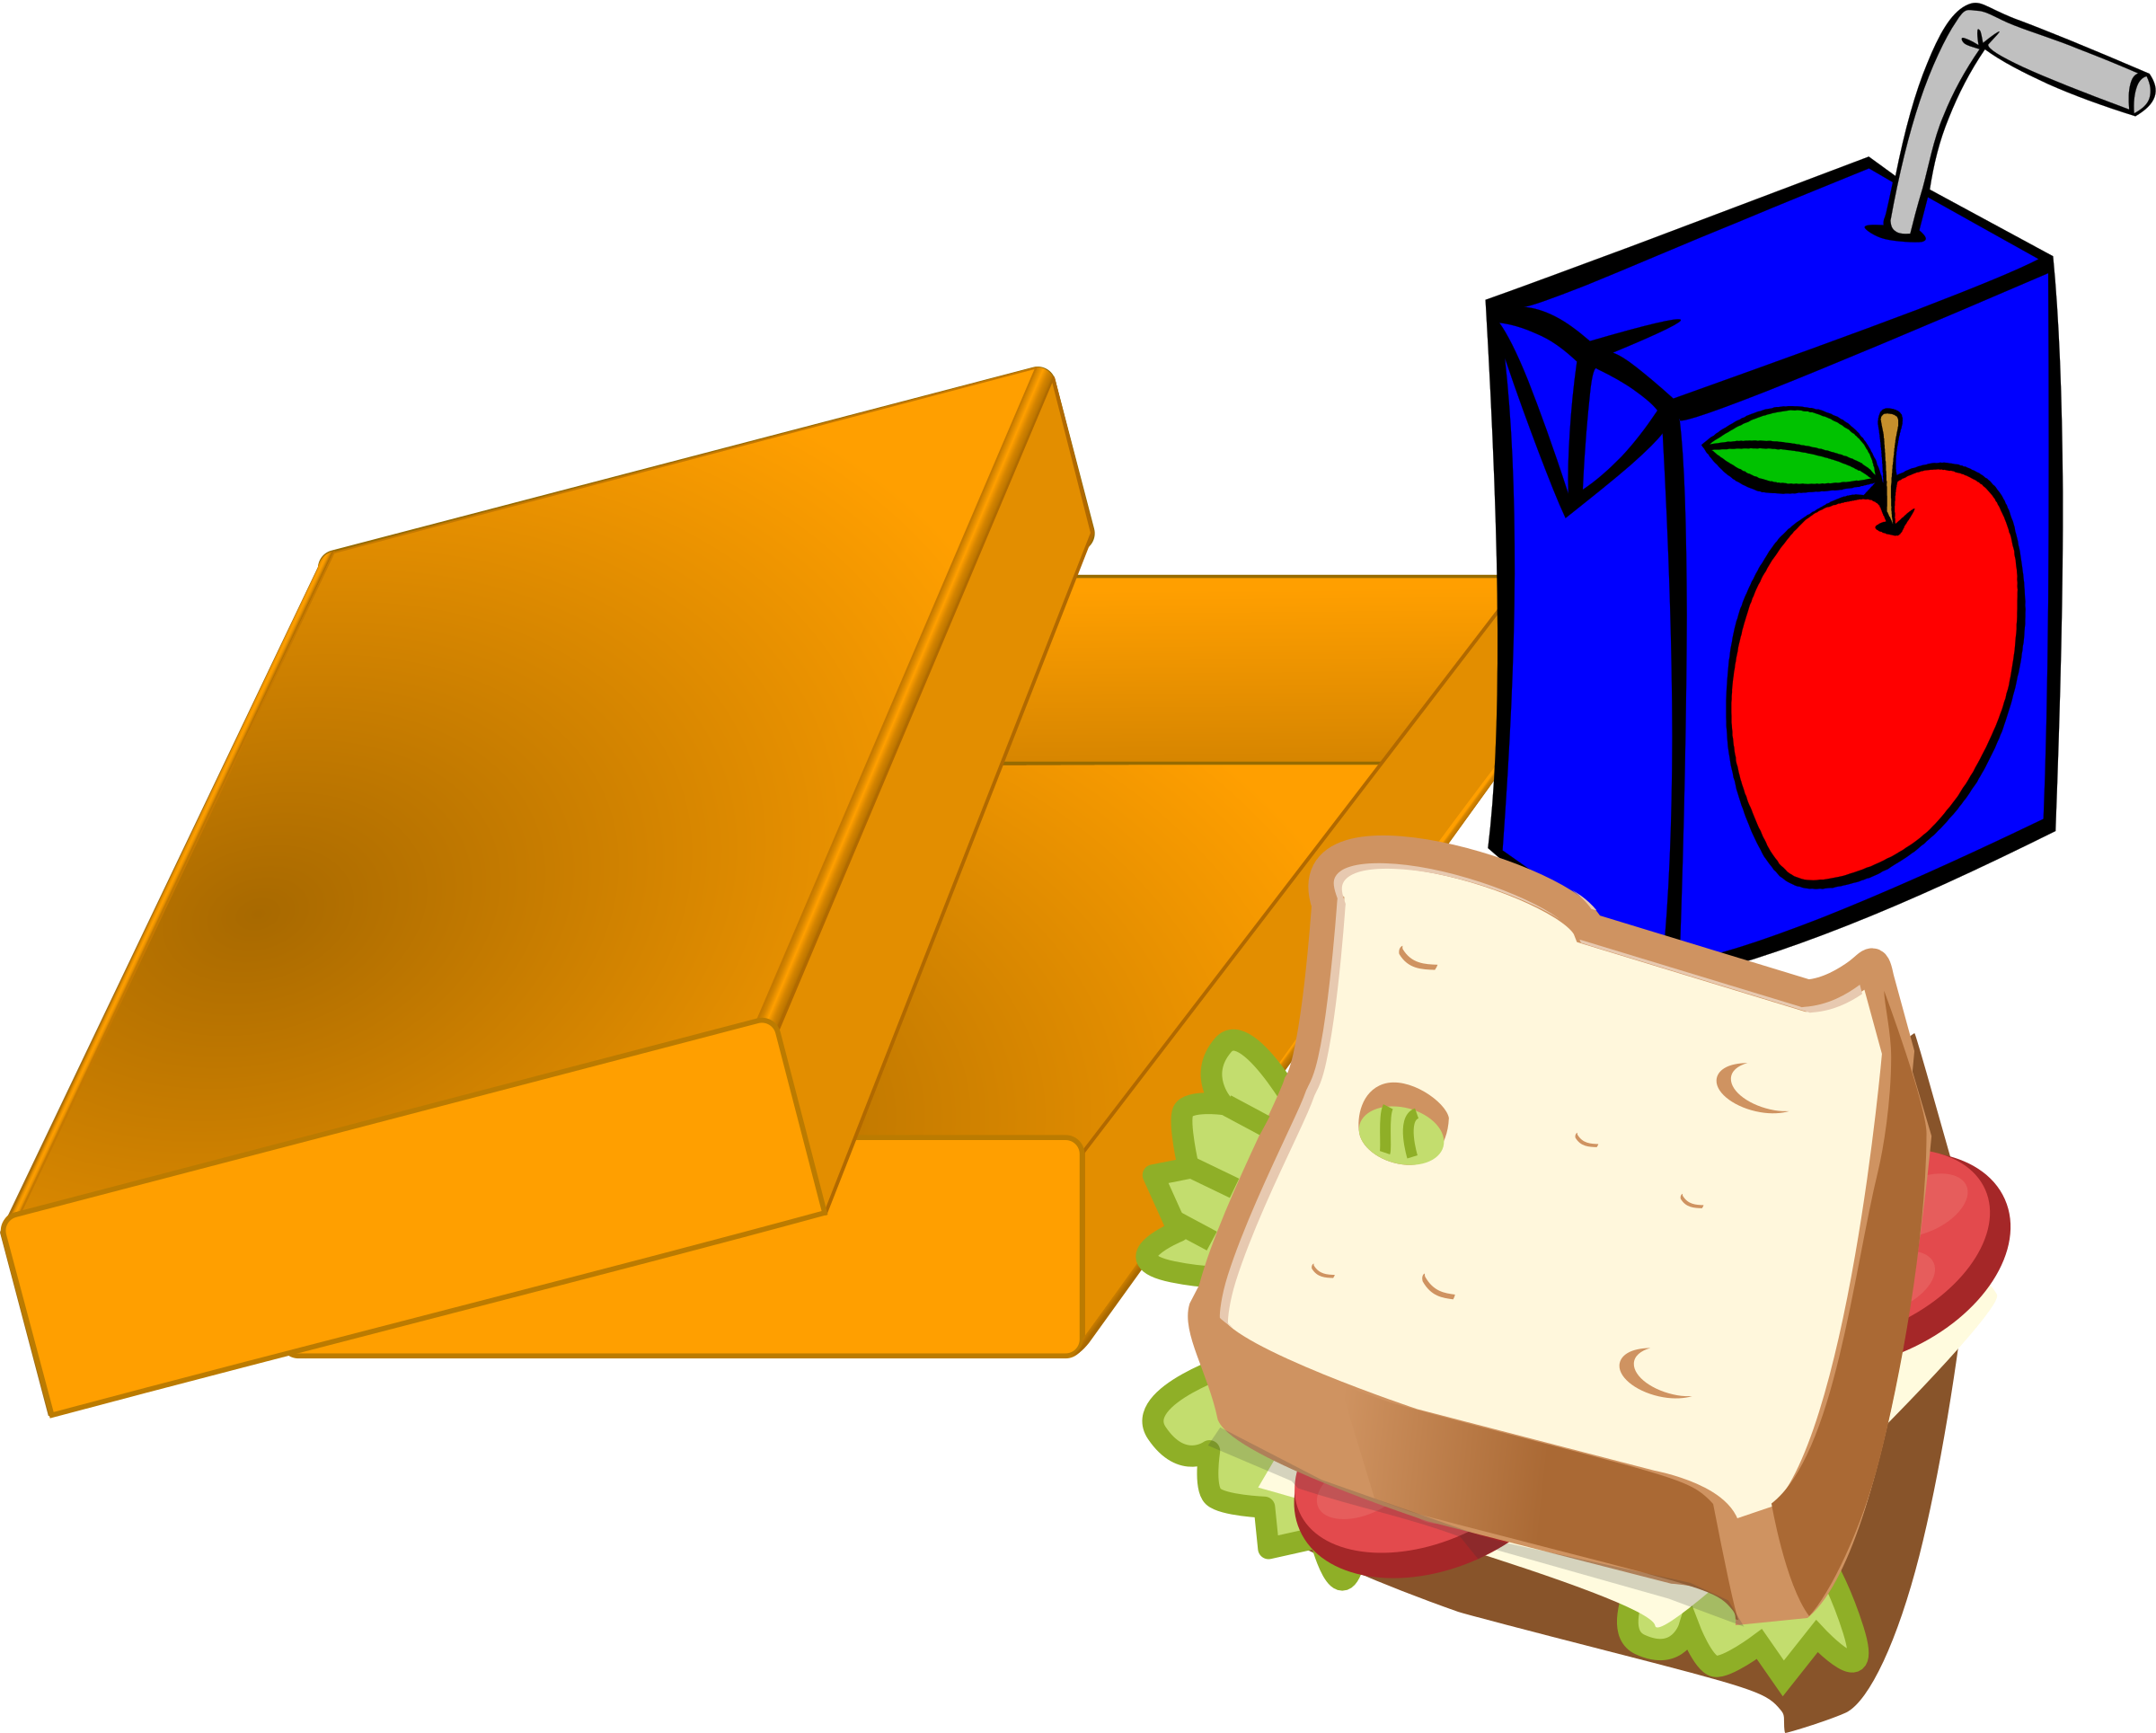 Lunchbox clipart lunch order. Brainstorming sessions for elementary